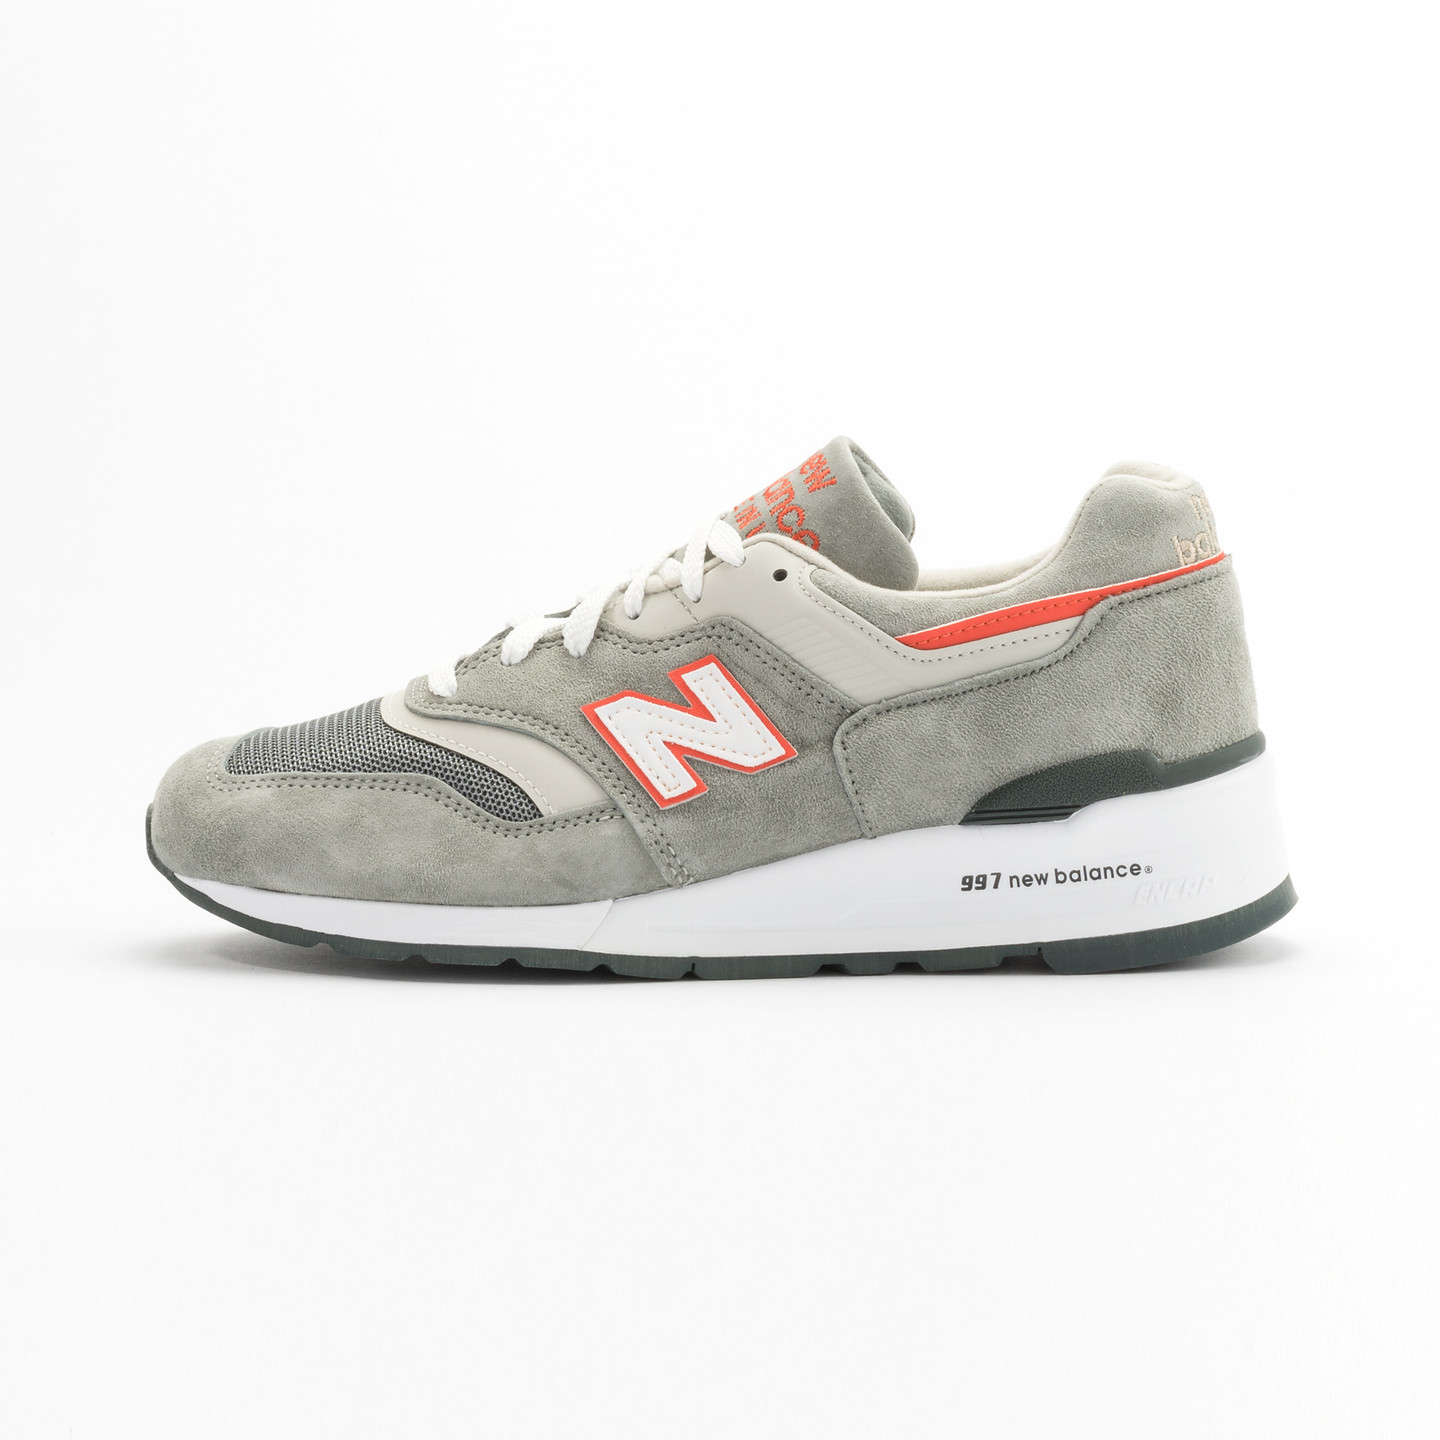 New Balance M997 Made in USA Grey / Orange M997CHT-44.5